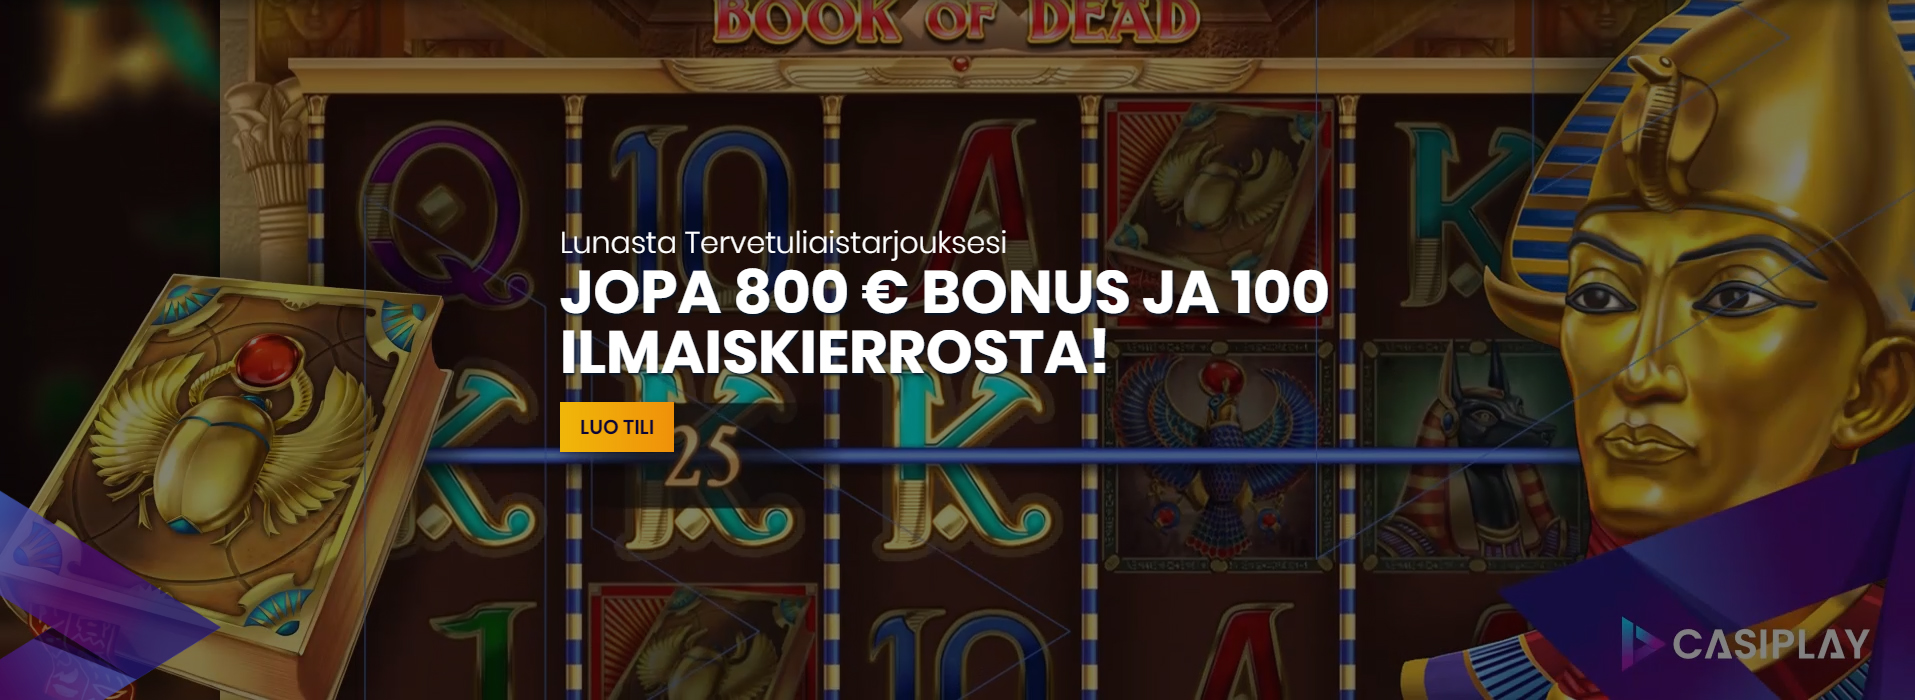 Casiplay Casino Content Images - Finland CasinoTop 01